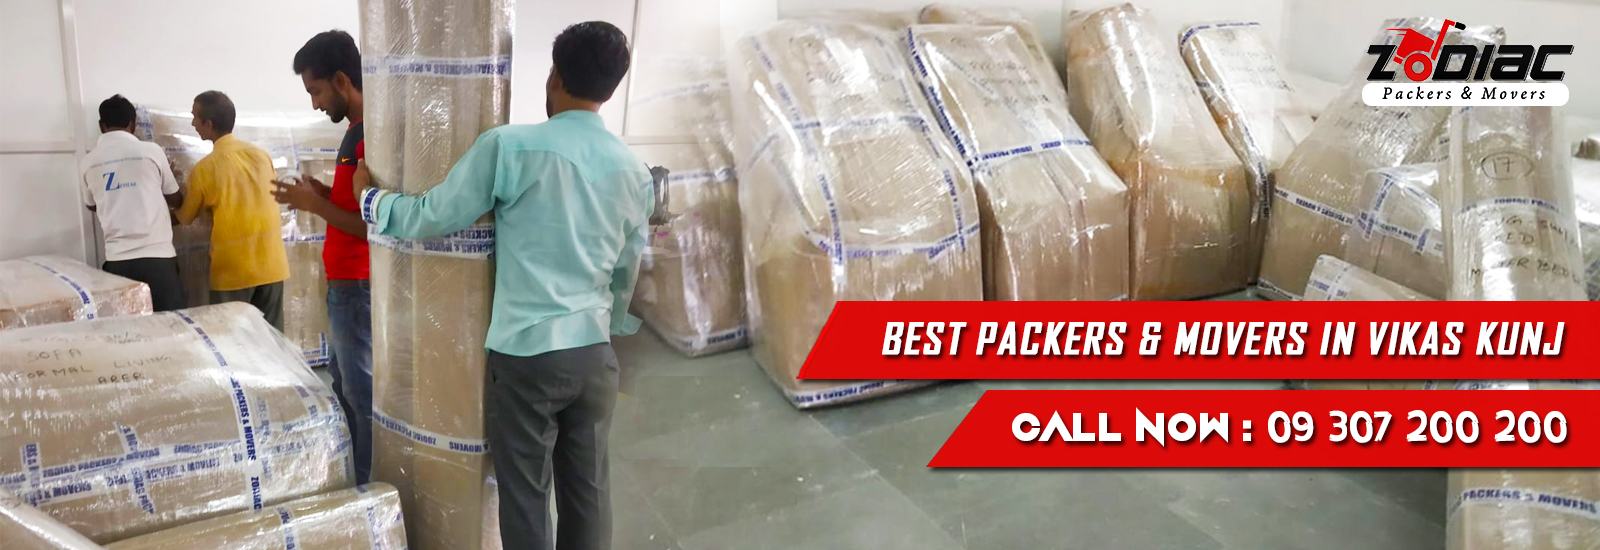 Packers and Movers in Vikas Kunj